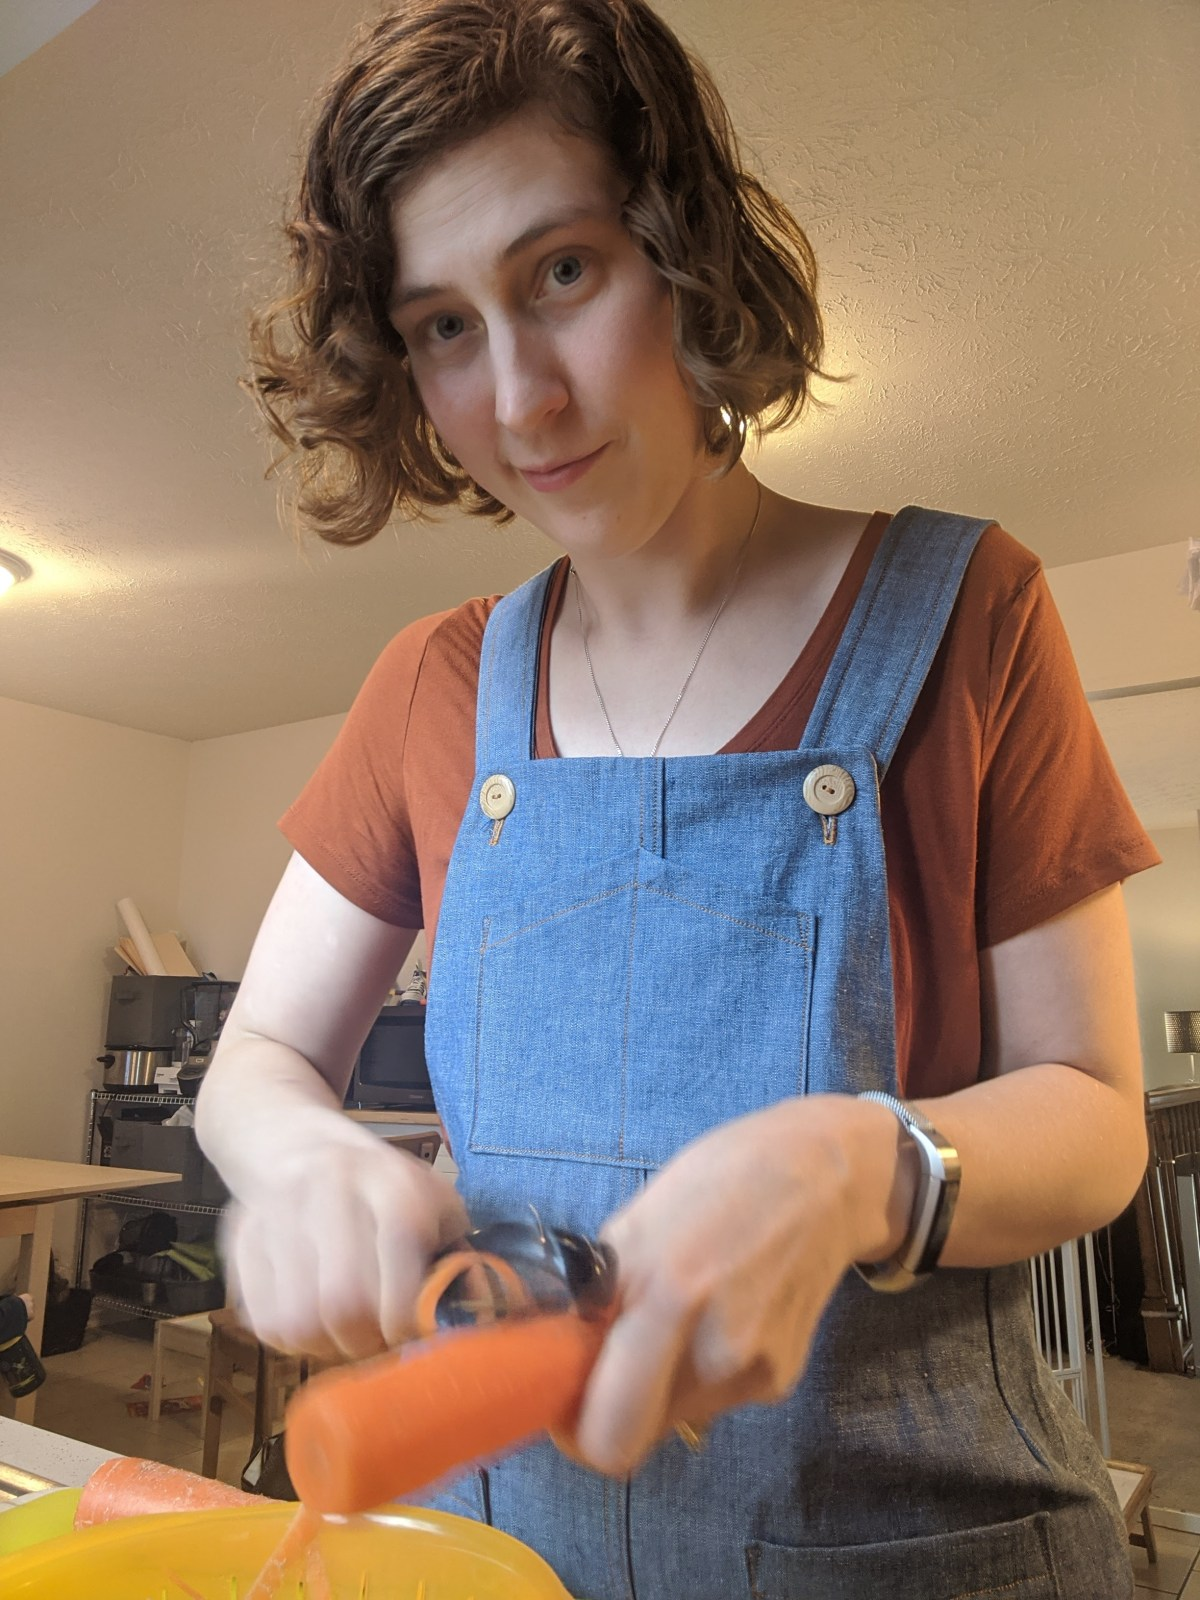 A white woman with short, curly brown hair looks down at the camera. She is wearing a brown short-sleeved t-shirt and light colored denim overalls. She is peeling a carrot.